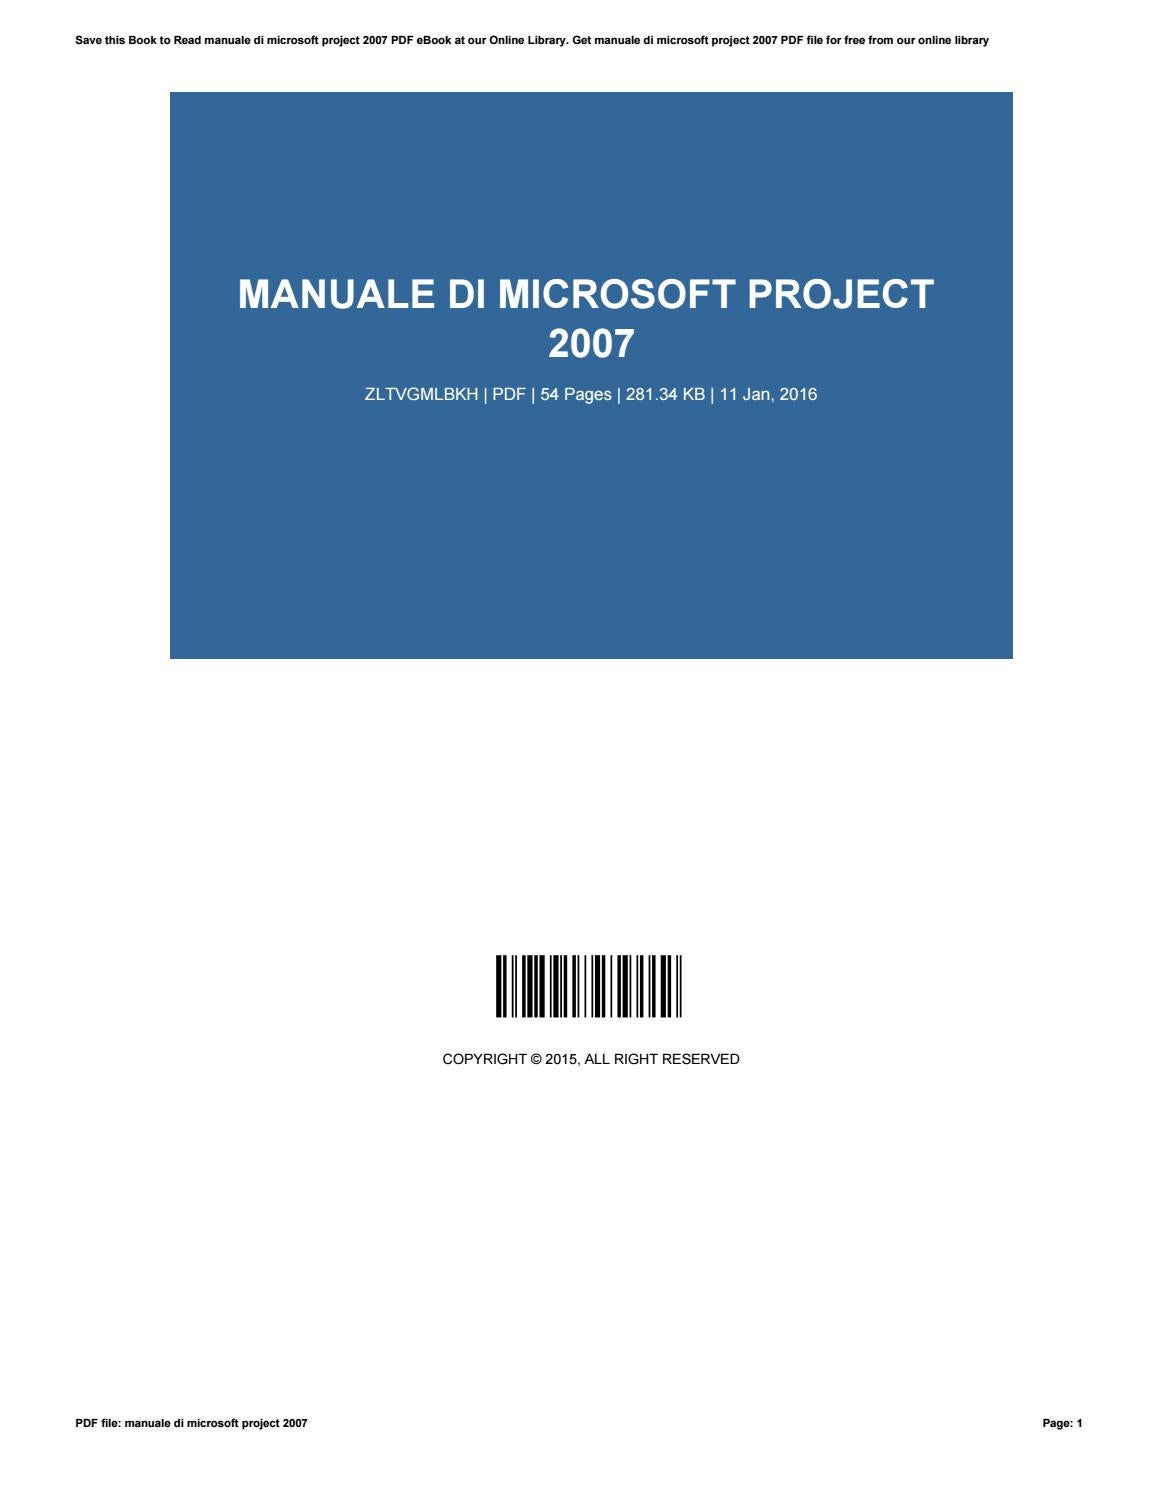 Ms Project 2007 For Dummies Pdf